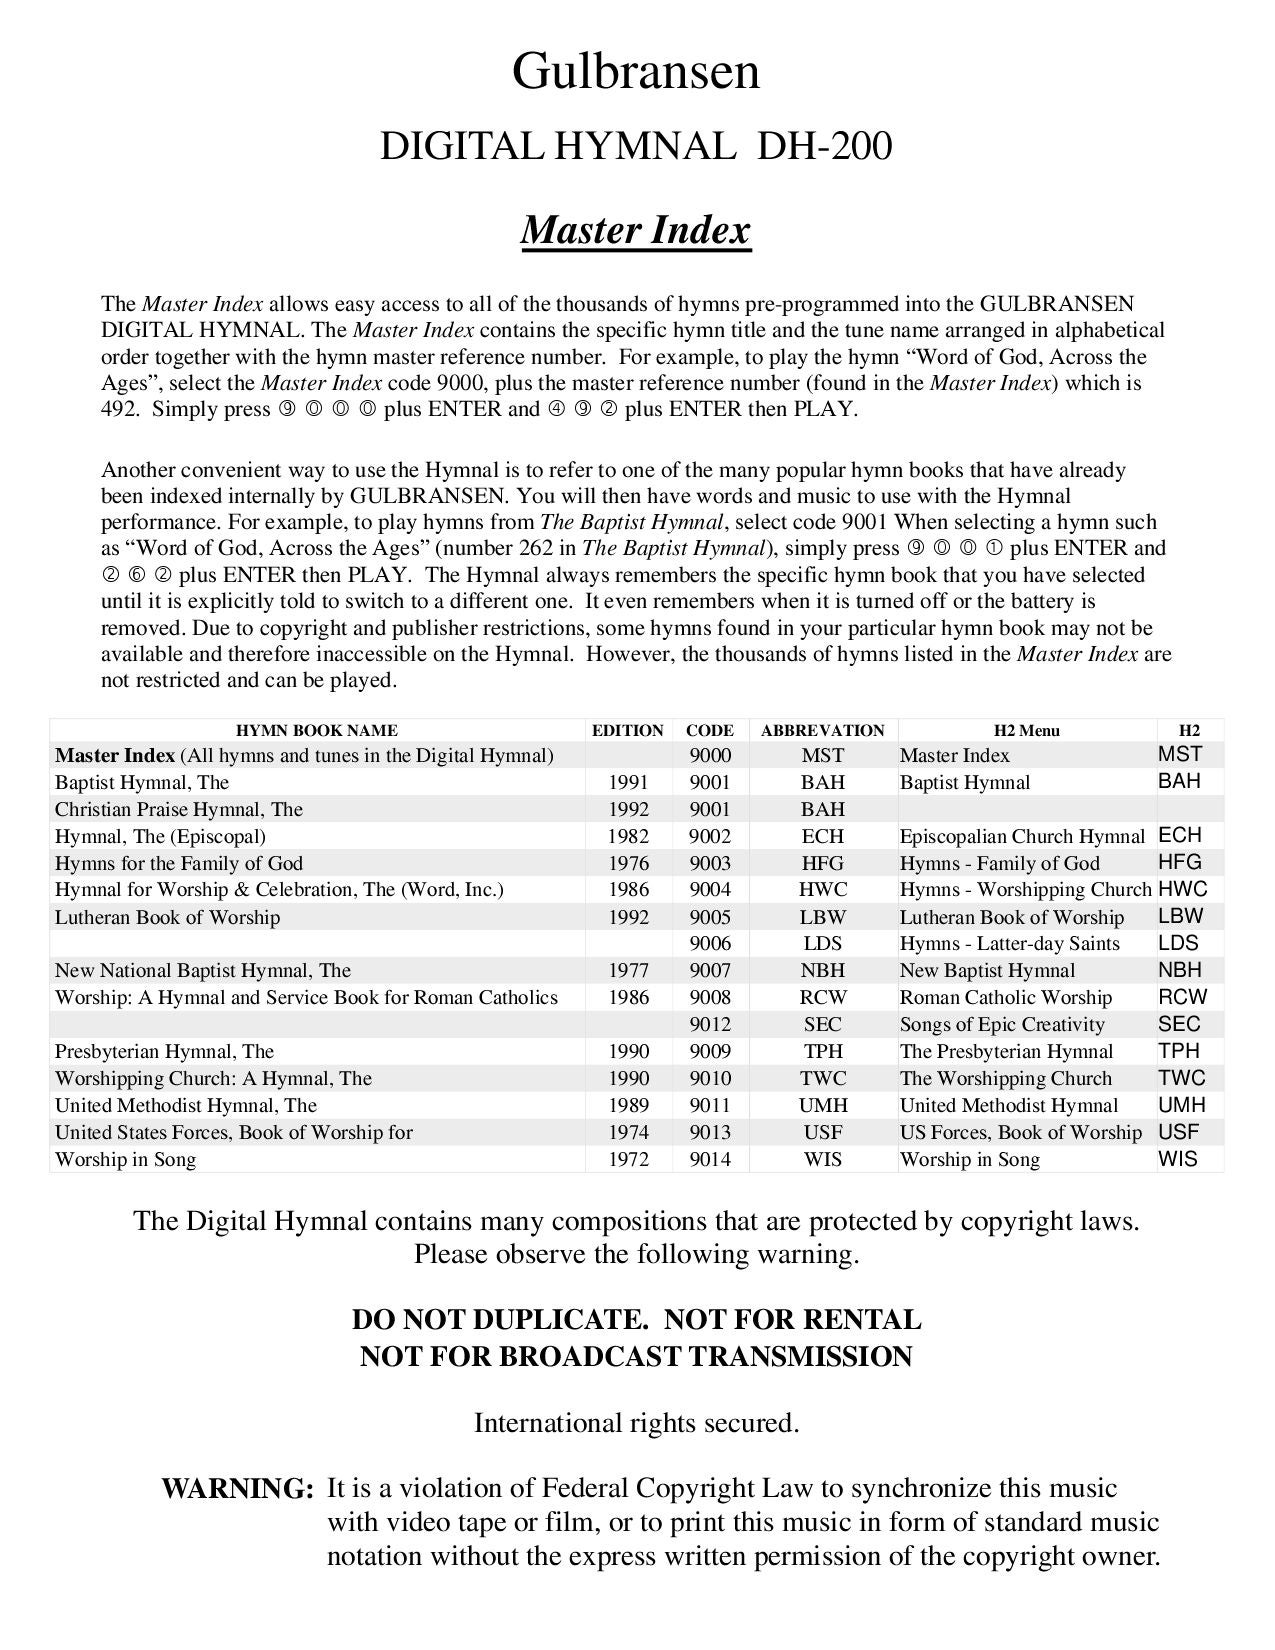 DH200 Master Index by Thomas Moulin - issuu